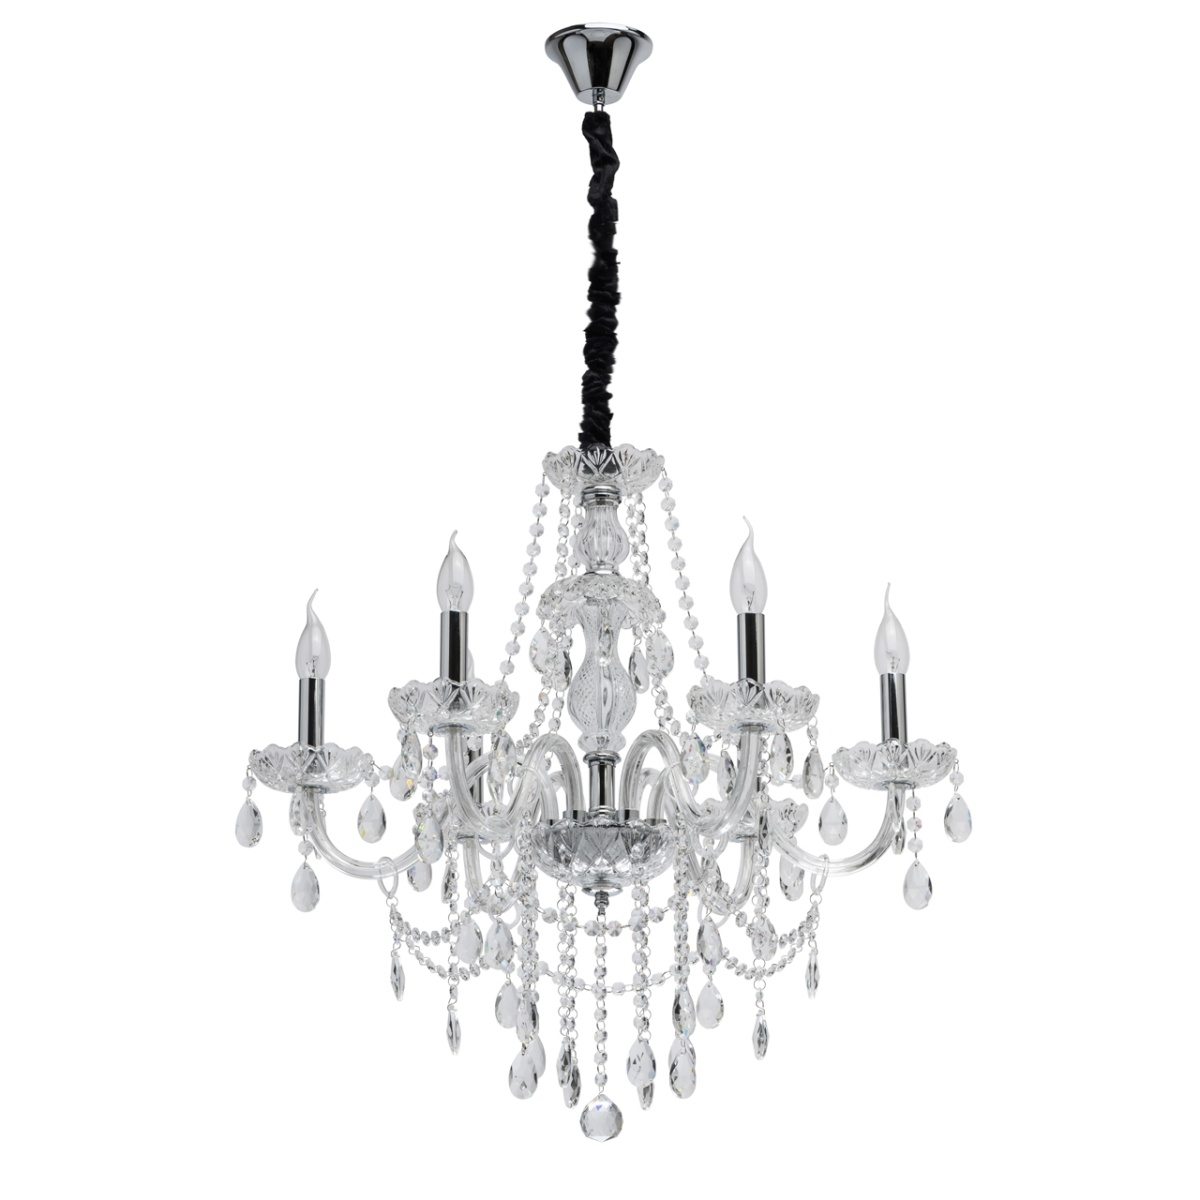 Candelabru MW-Light Crystal Adele 373015006 imagine